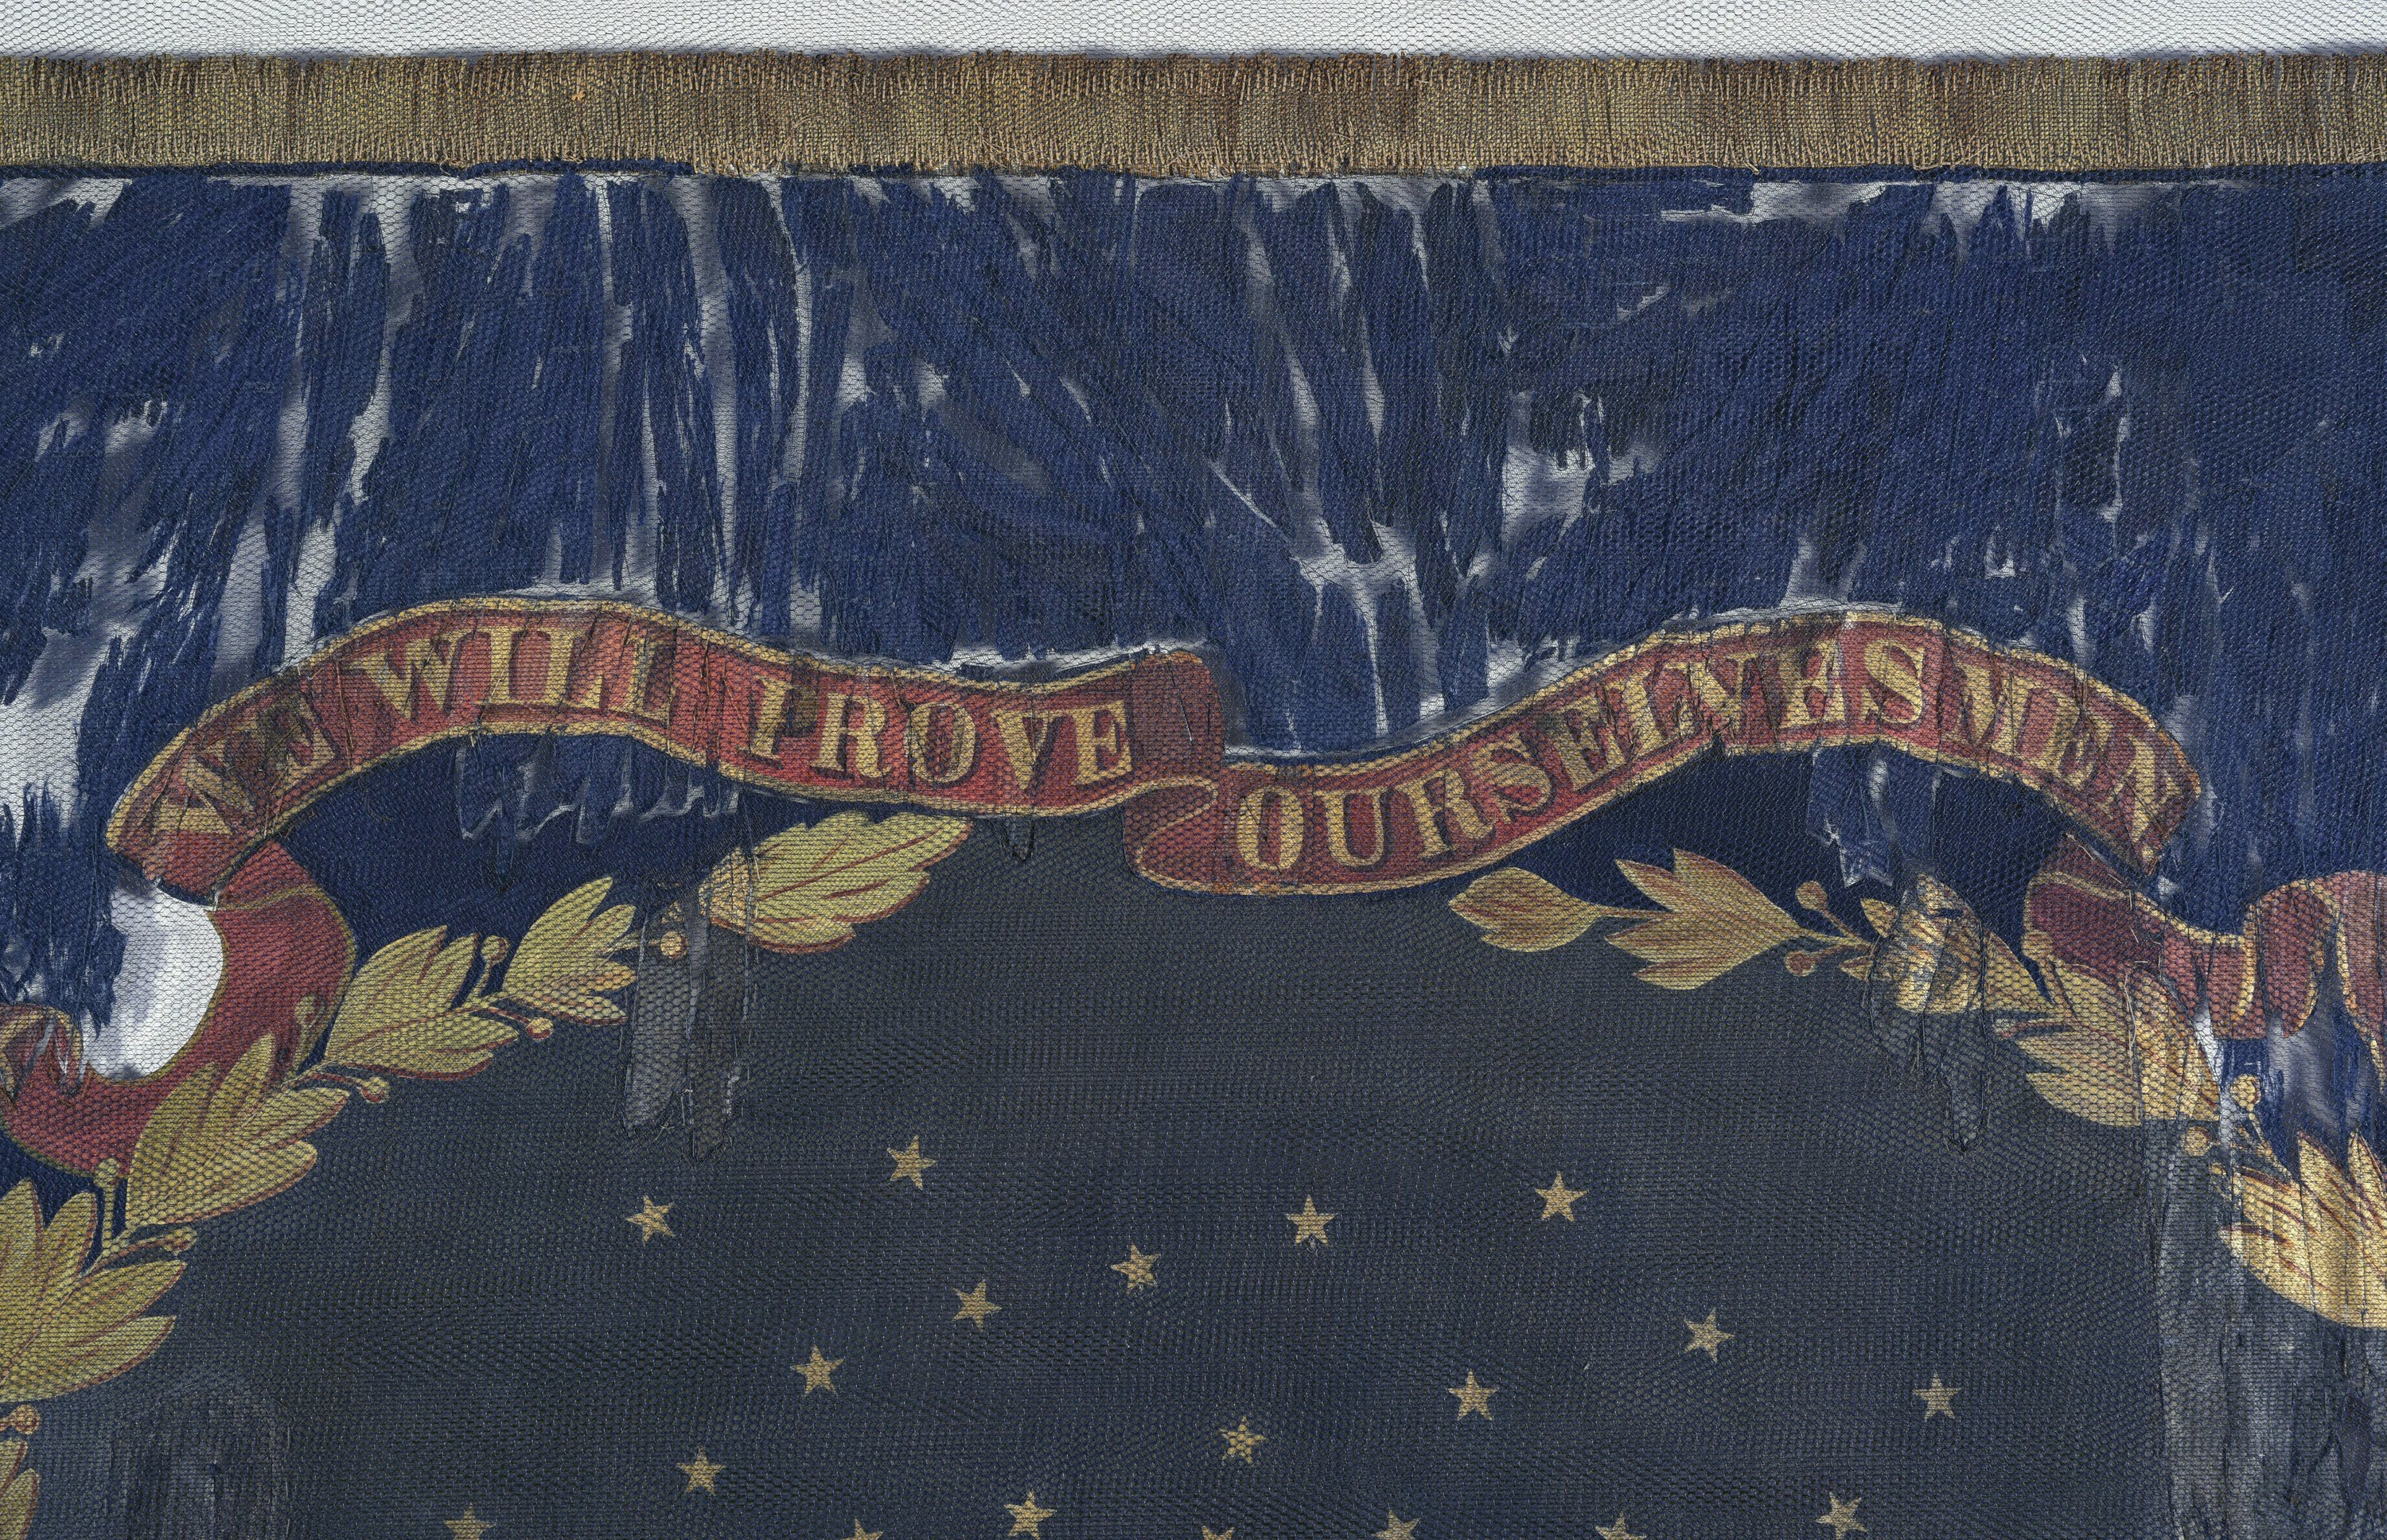 Battle flag carried by black Union troops hits auction block